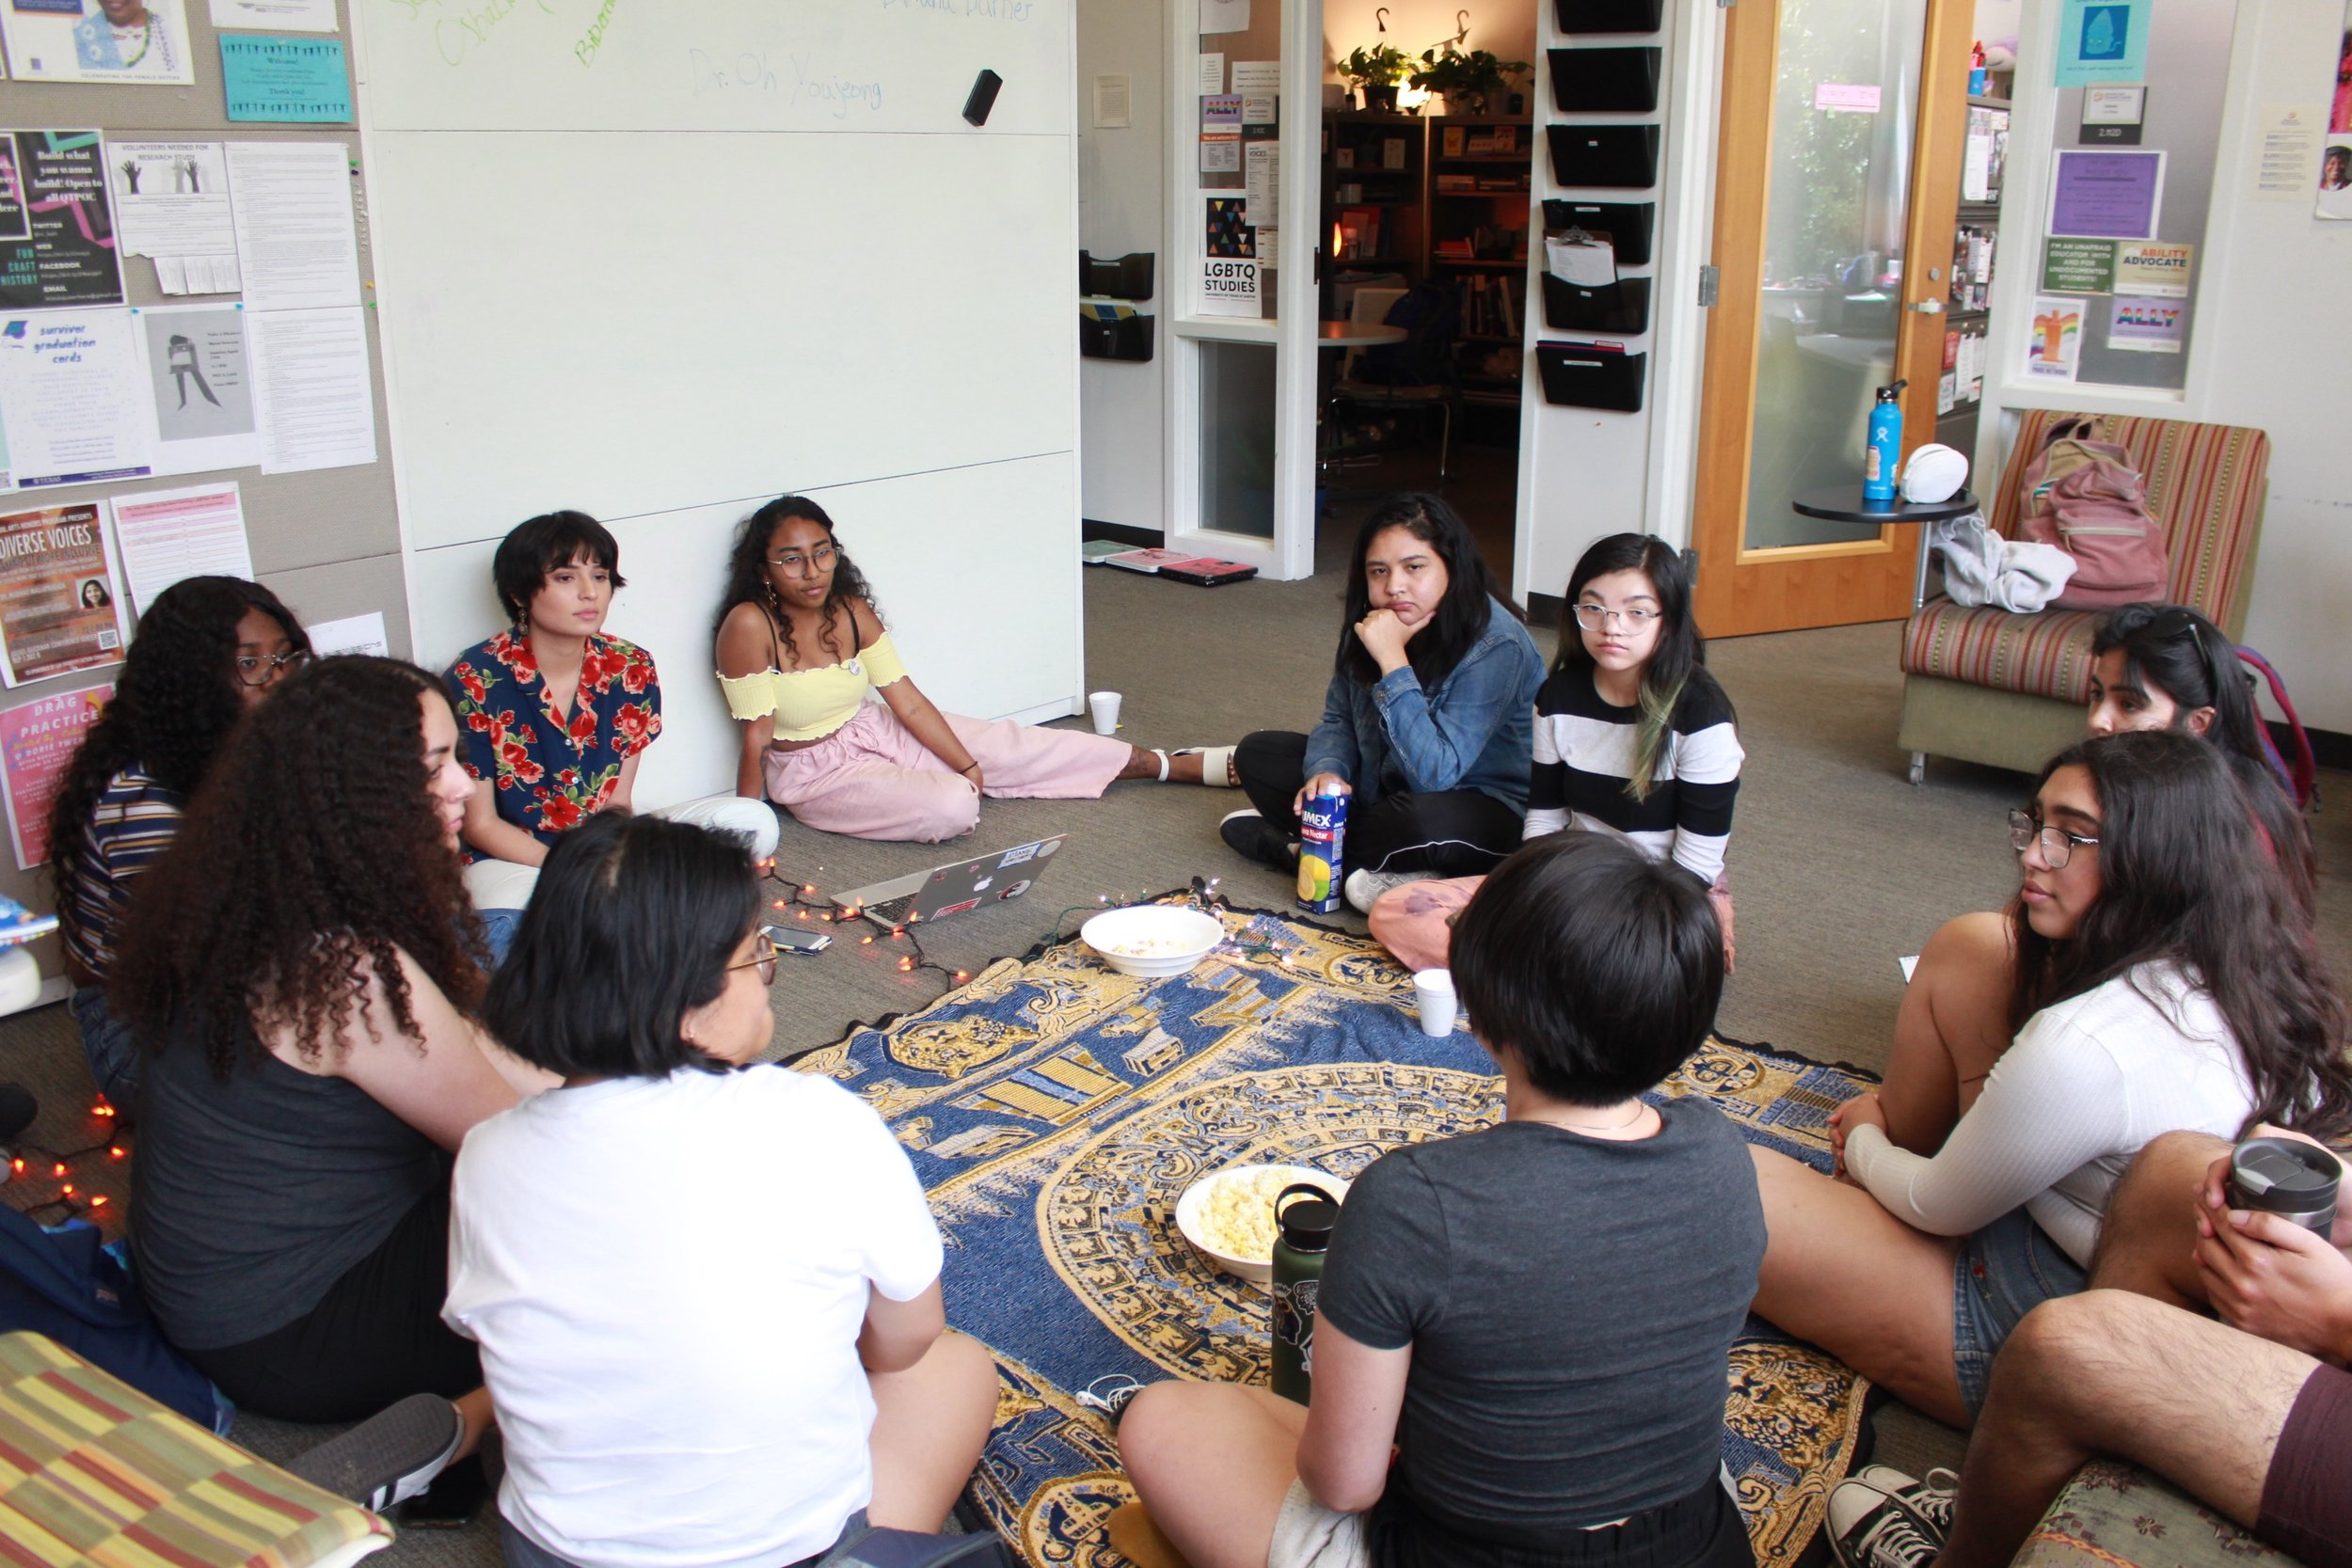 Women of color discuss how their identity is tied to spiritual practices that they might take for granted, this BIWOC event is special as it celebrates the traditions of indigenous ancestors.